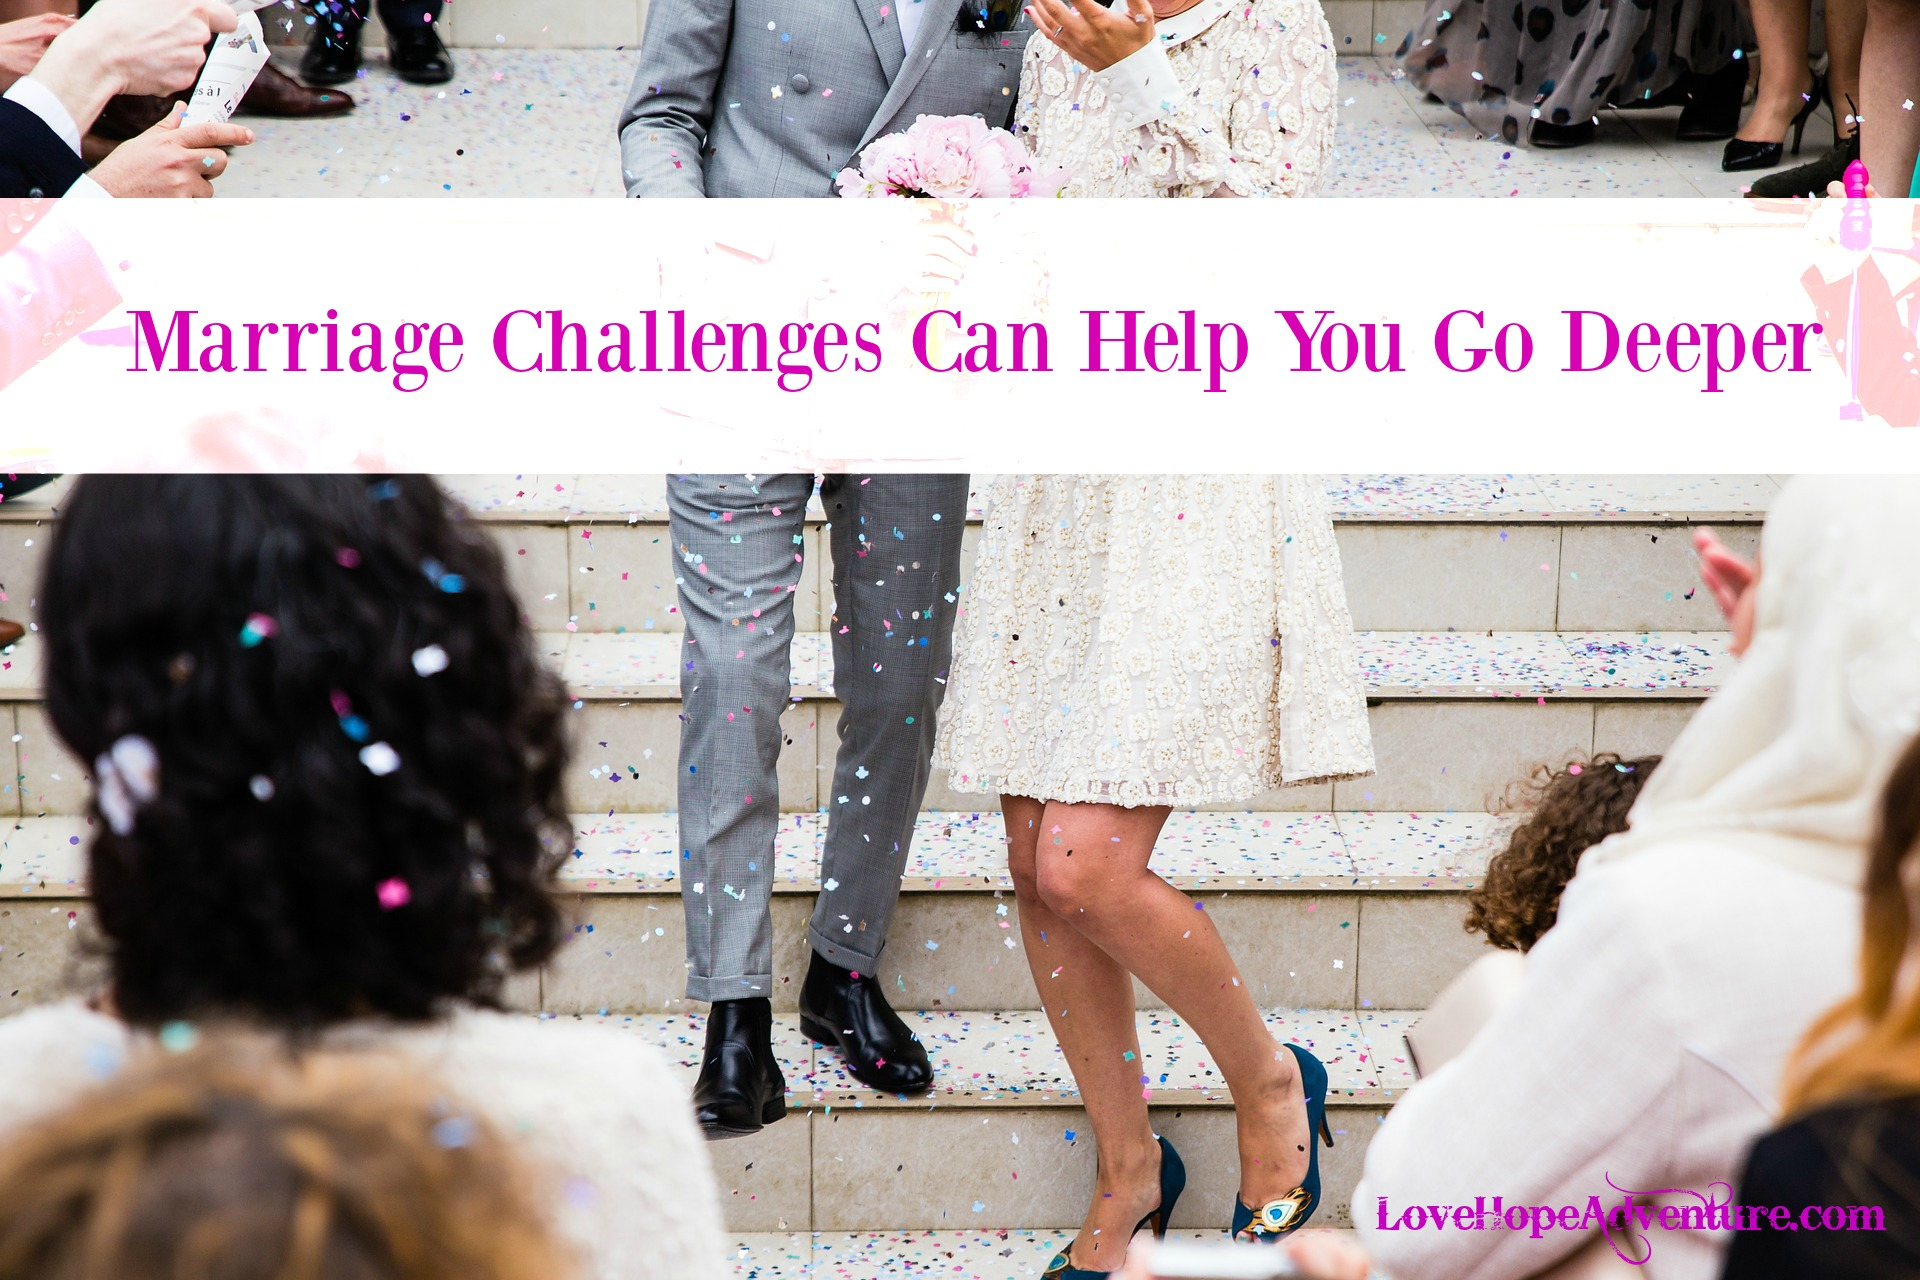 Marriage Challenges Can Help You Go Deeper